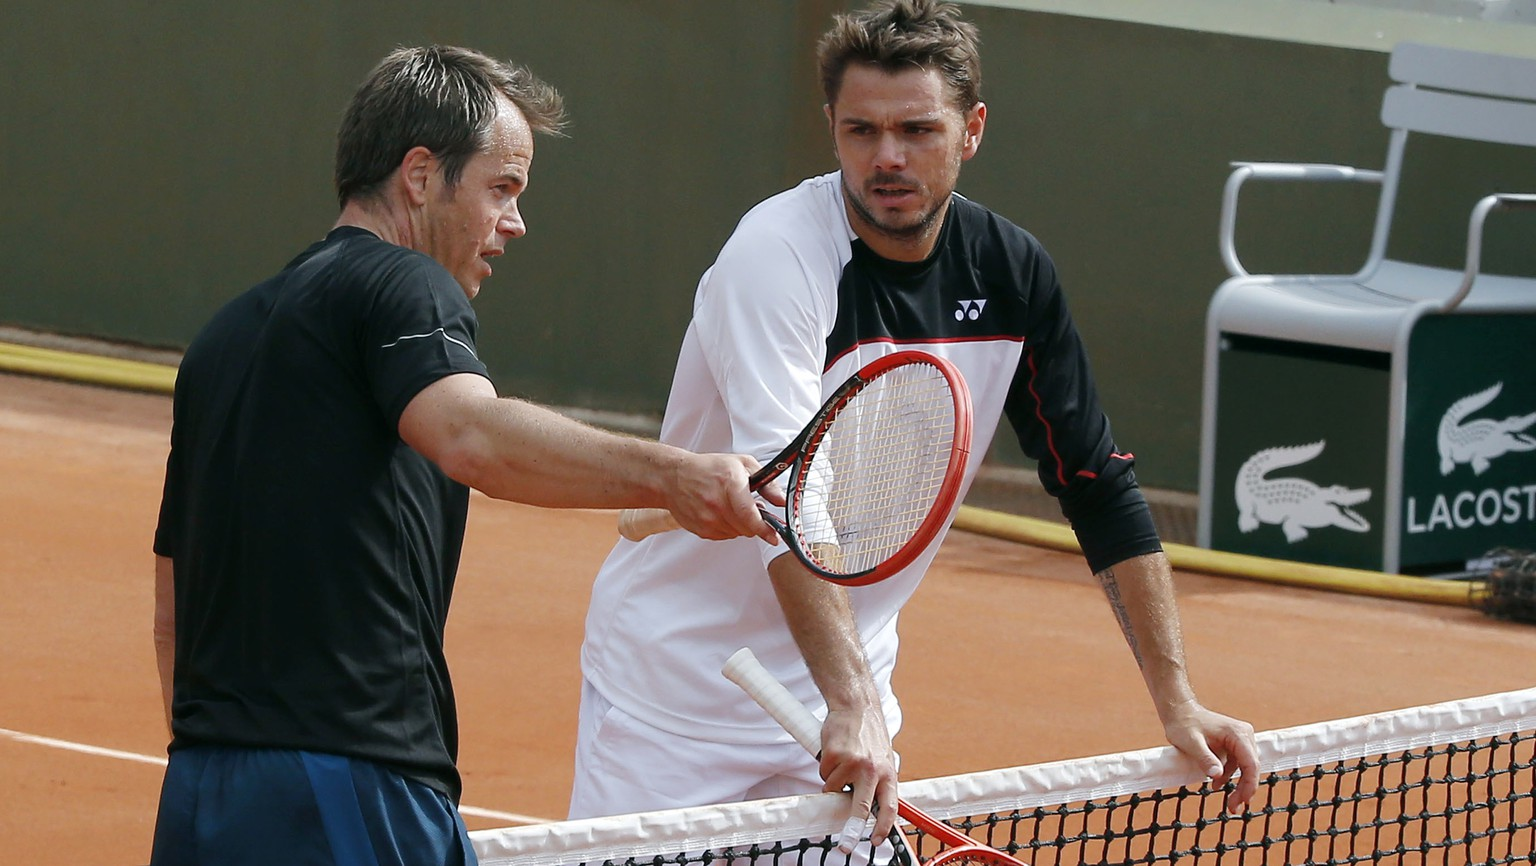 FILE - In this May 24, 2014, file photo, Stanislas Wawrinka, right, listening to his coach Magnus Norman during a training session for the French Open tennis tournament at Roland Garros in Paris.  Wawrinka needs a new coach, because Magnus Norman is moving on. Norman announced Wednesday, Oct. 25, 2017,  that he would be quitting the job after 4 and a half years as Wawrinka's coach, saying he wants to spend more time with his two young children. (AP Photo/Michel Euler, File)